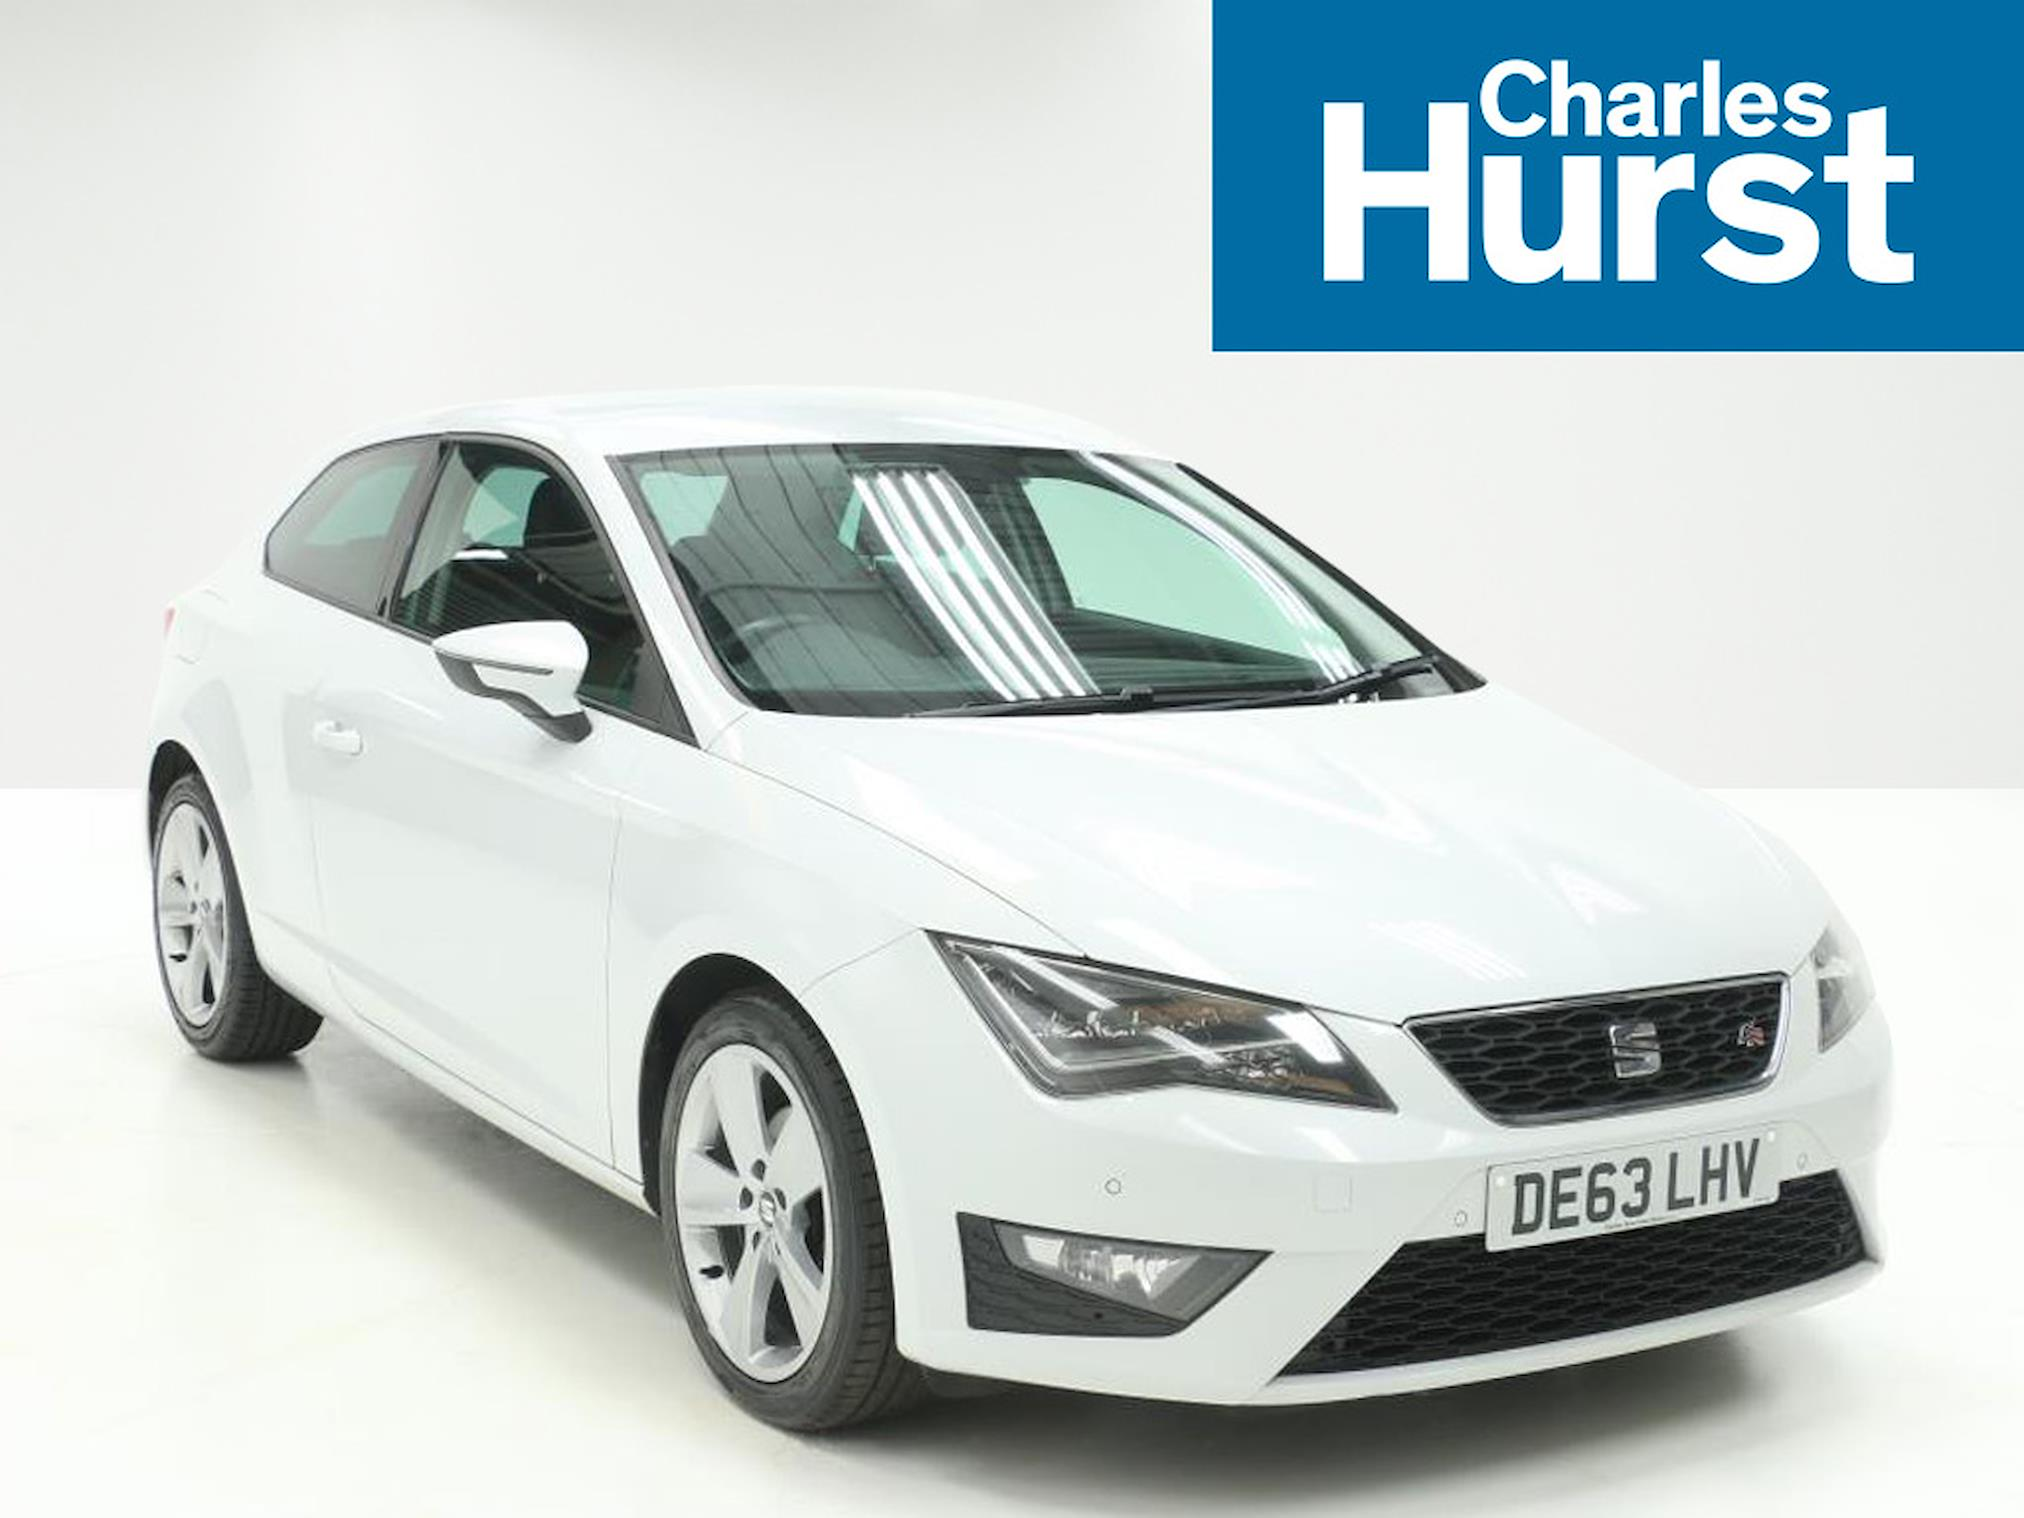 Used LEON SEAT 1 4 Tsi Fr 5Dr [Technology Pack] 2014 | Lookers